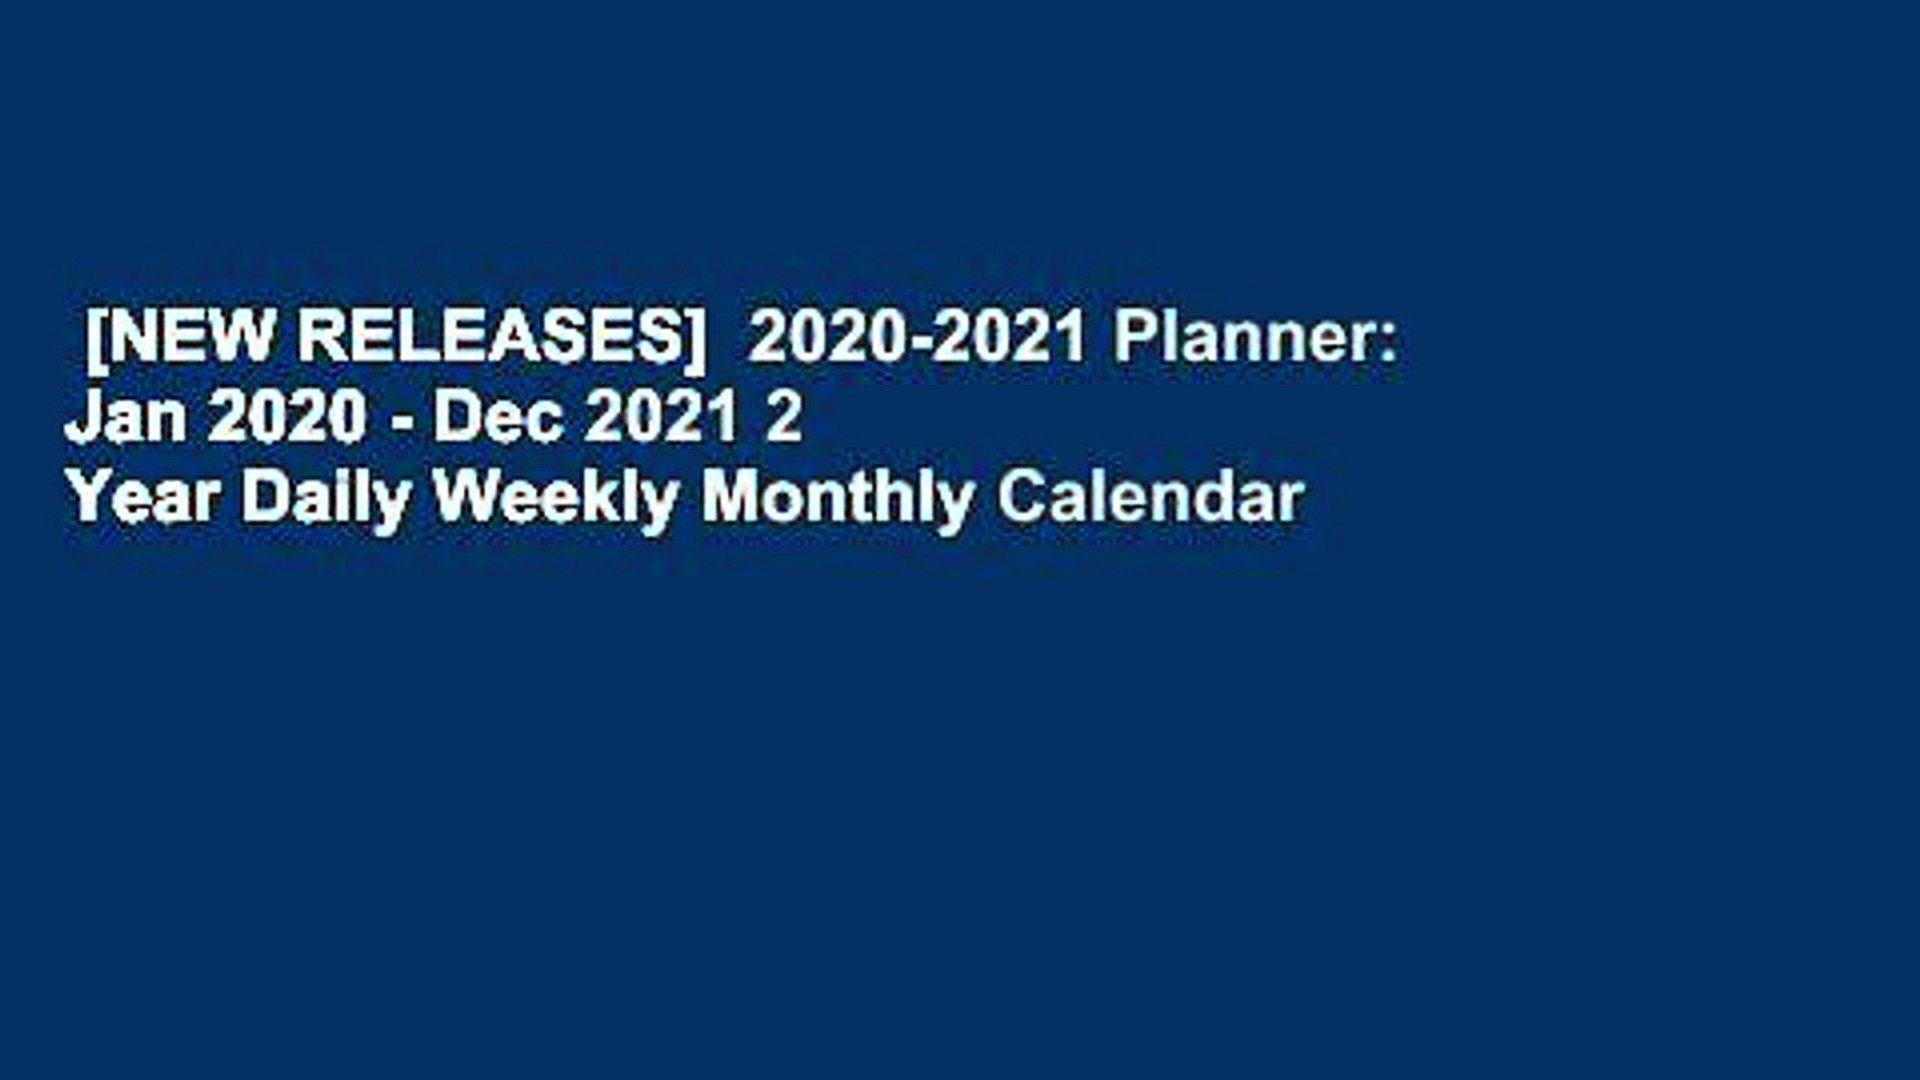 New Releases 2020.New Releases 2020 2021 Planner Jan 2020 Dec 2021 2 Year Daily Weekly Monthly Calendar